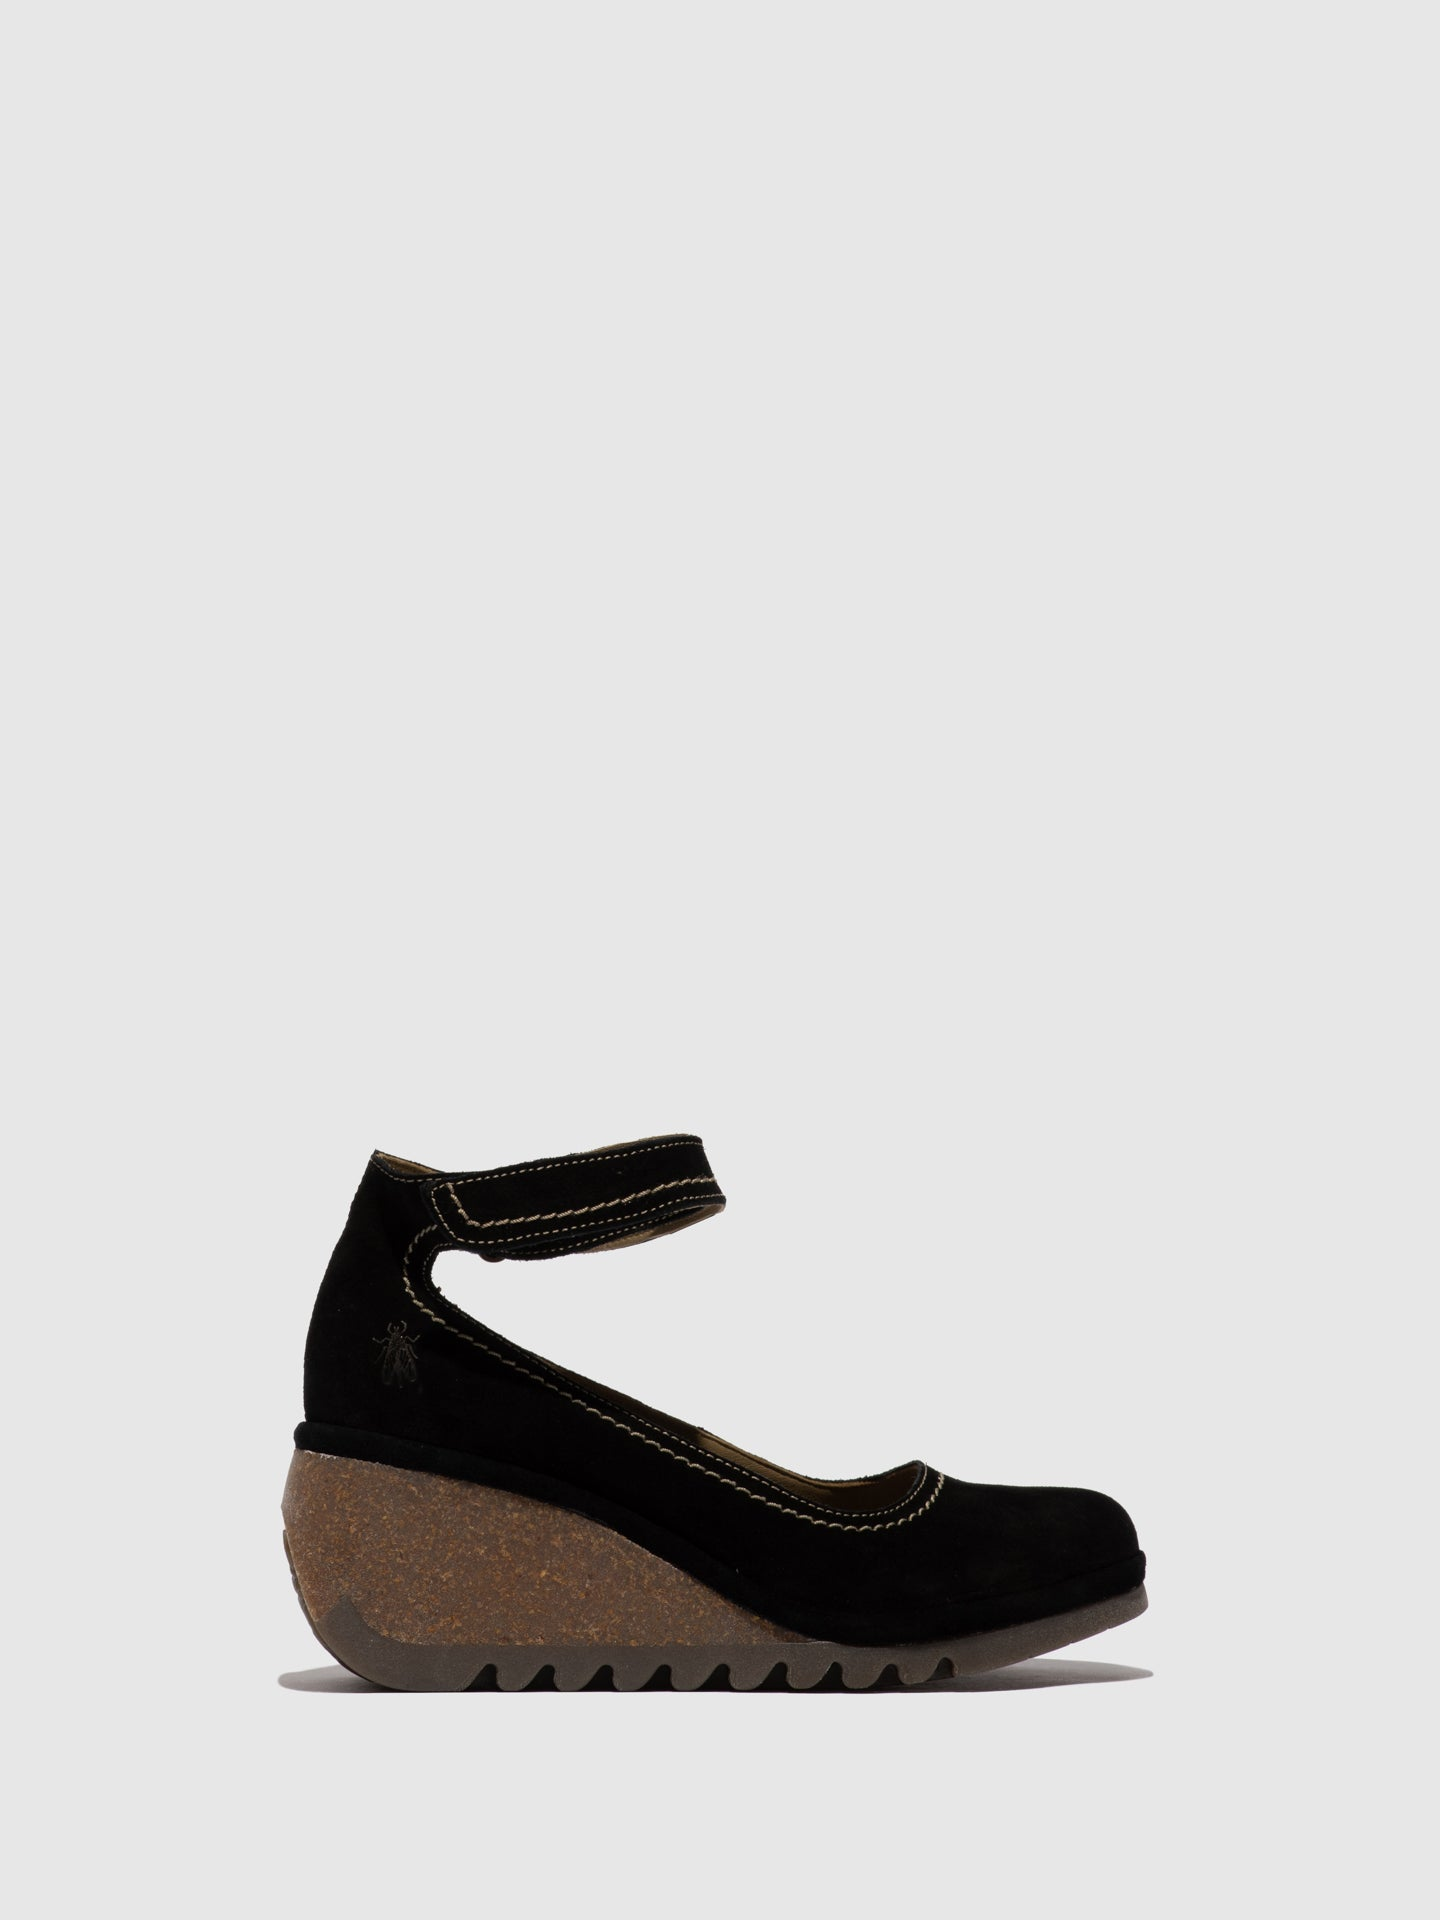 Fly London Black Suede Wedge Shoes